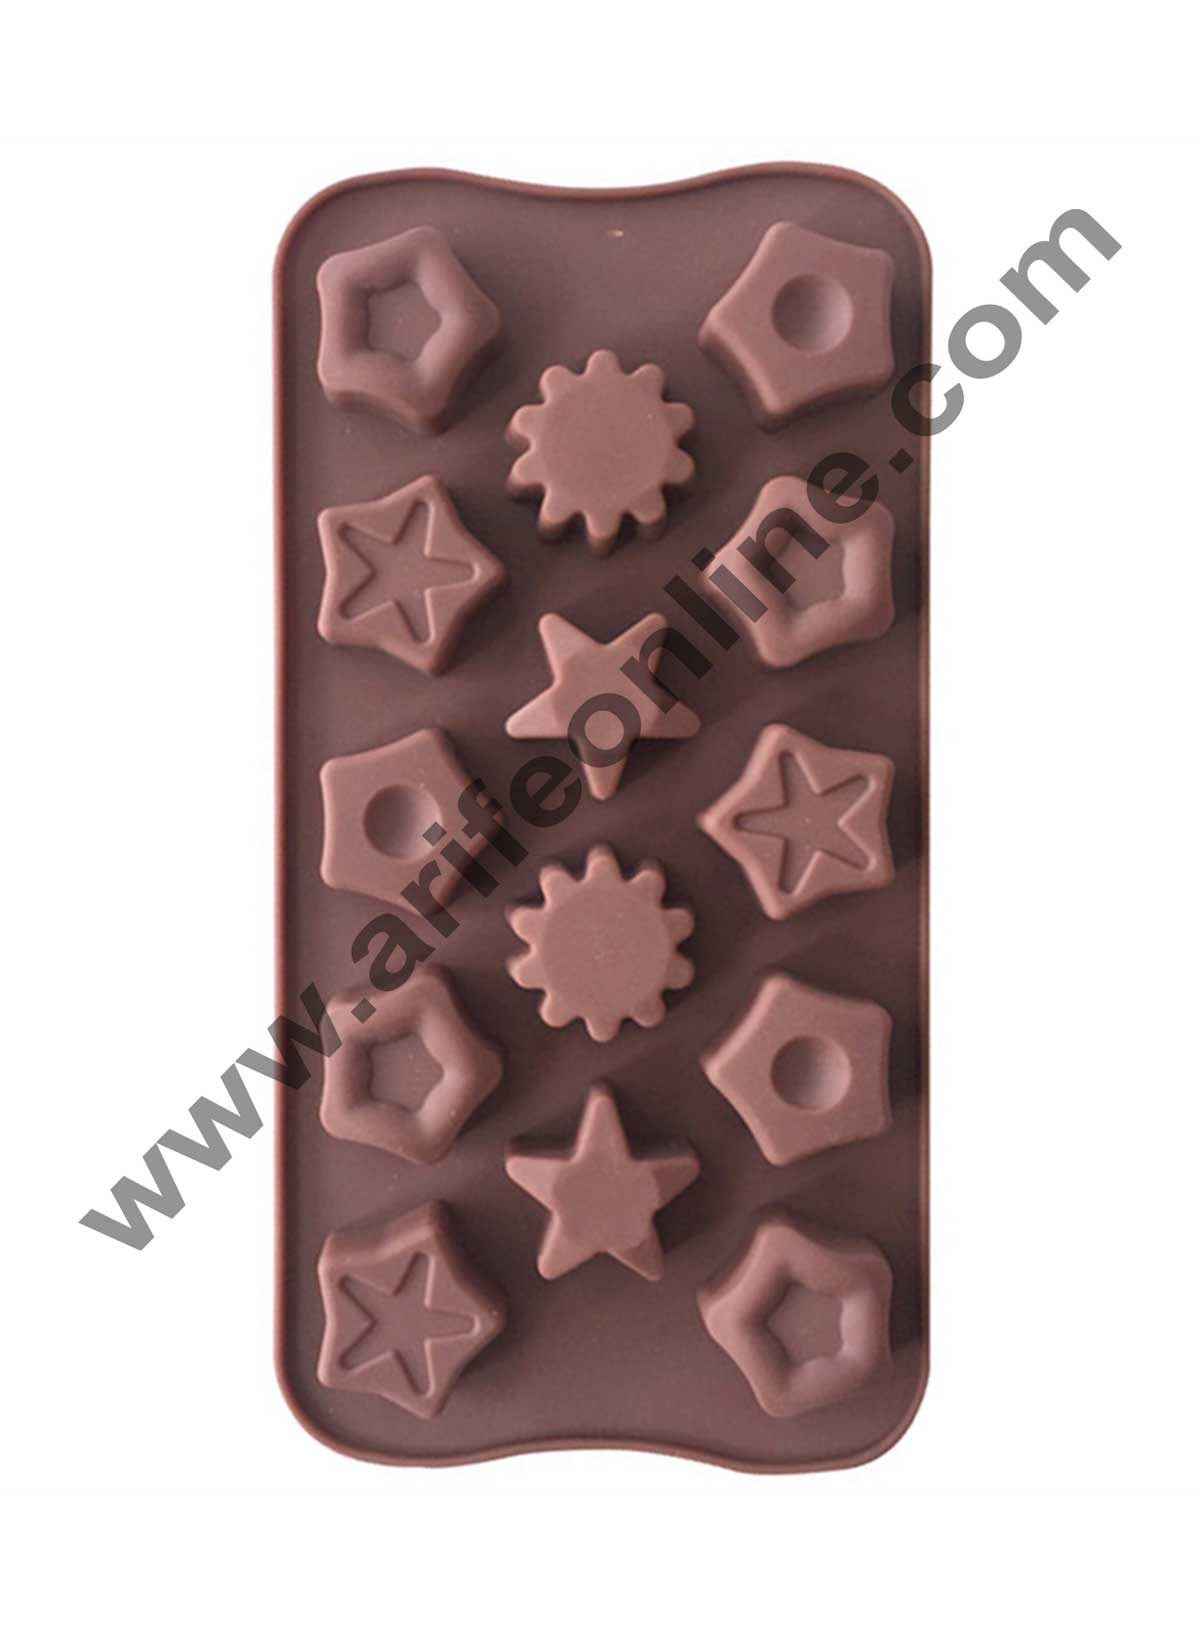 Cake Decor Silicon 14 Cavity Mix Star Shape Brown Chocolate Mould, Ice Mould, Chocolate Decorating Mould